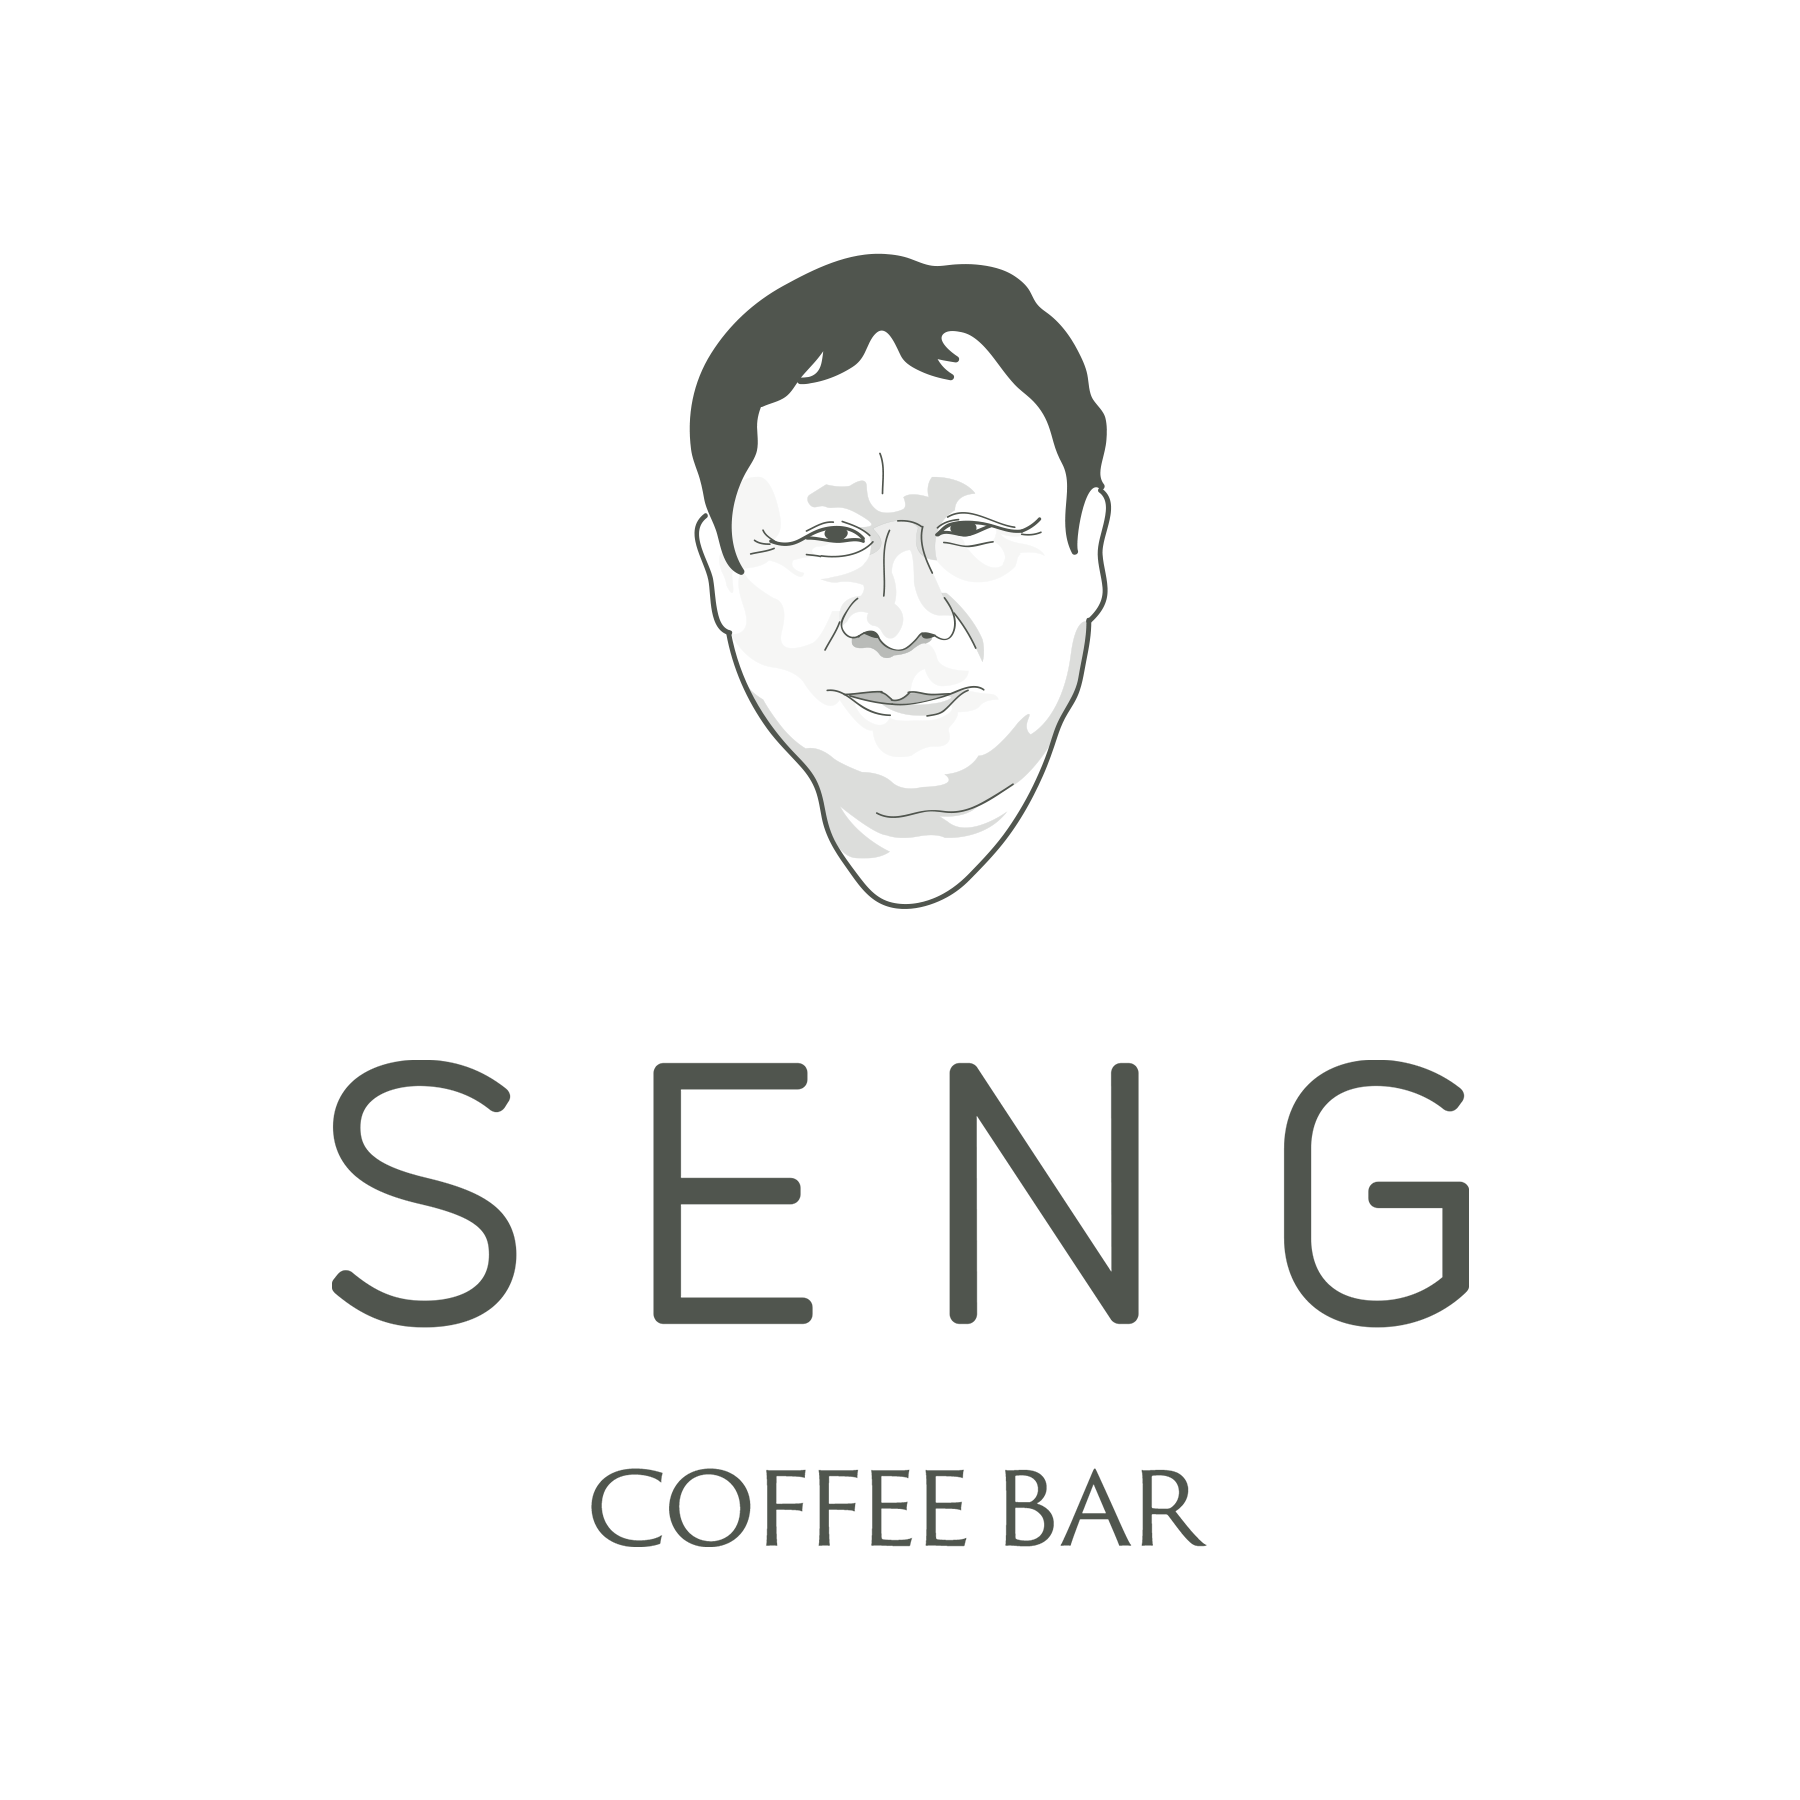 Seng Coffee Bar